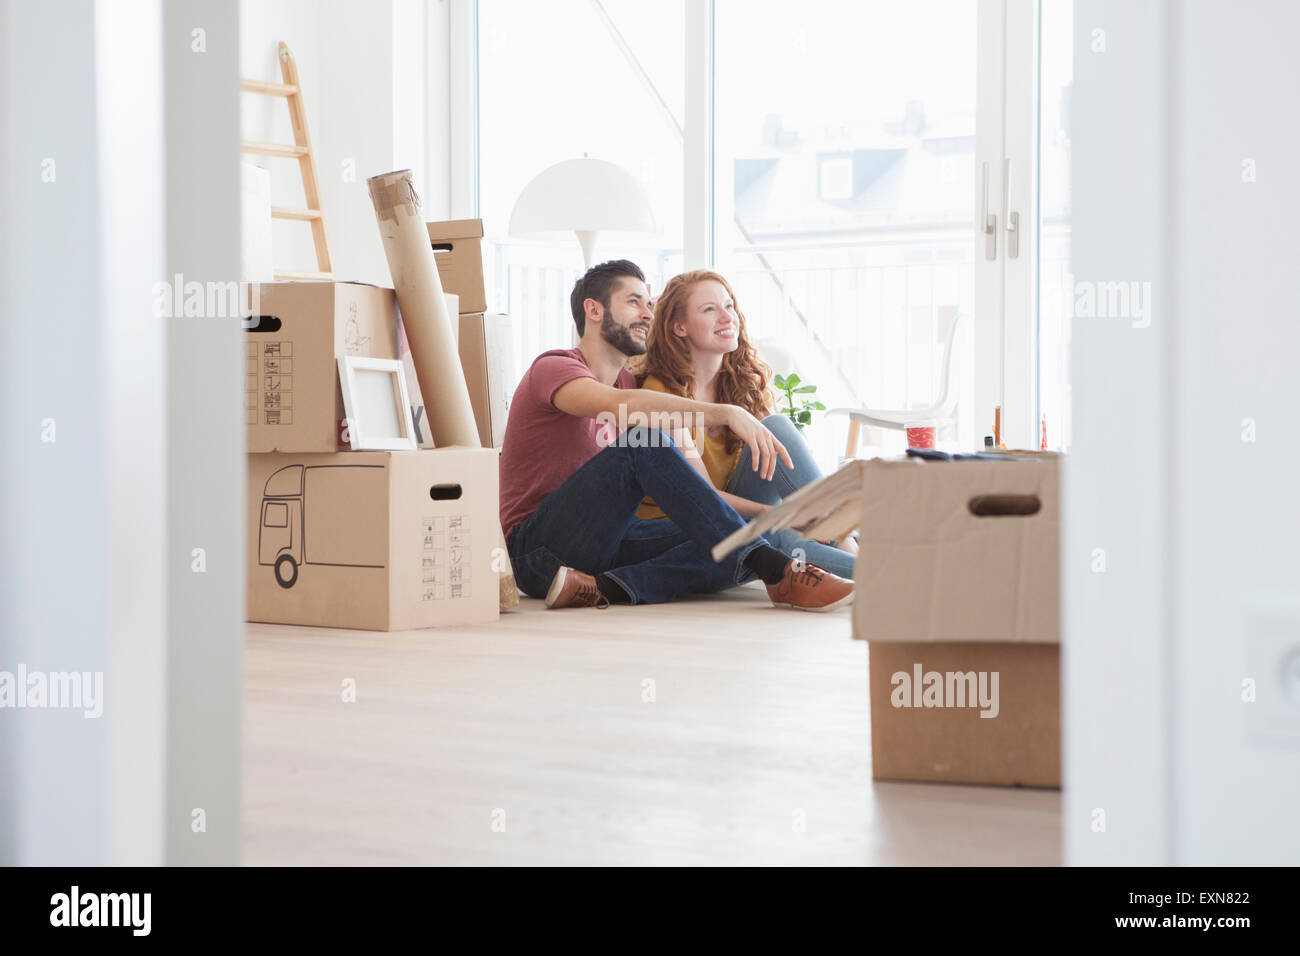 Young couple in new flat with cardboard boxes - Stock Image